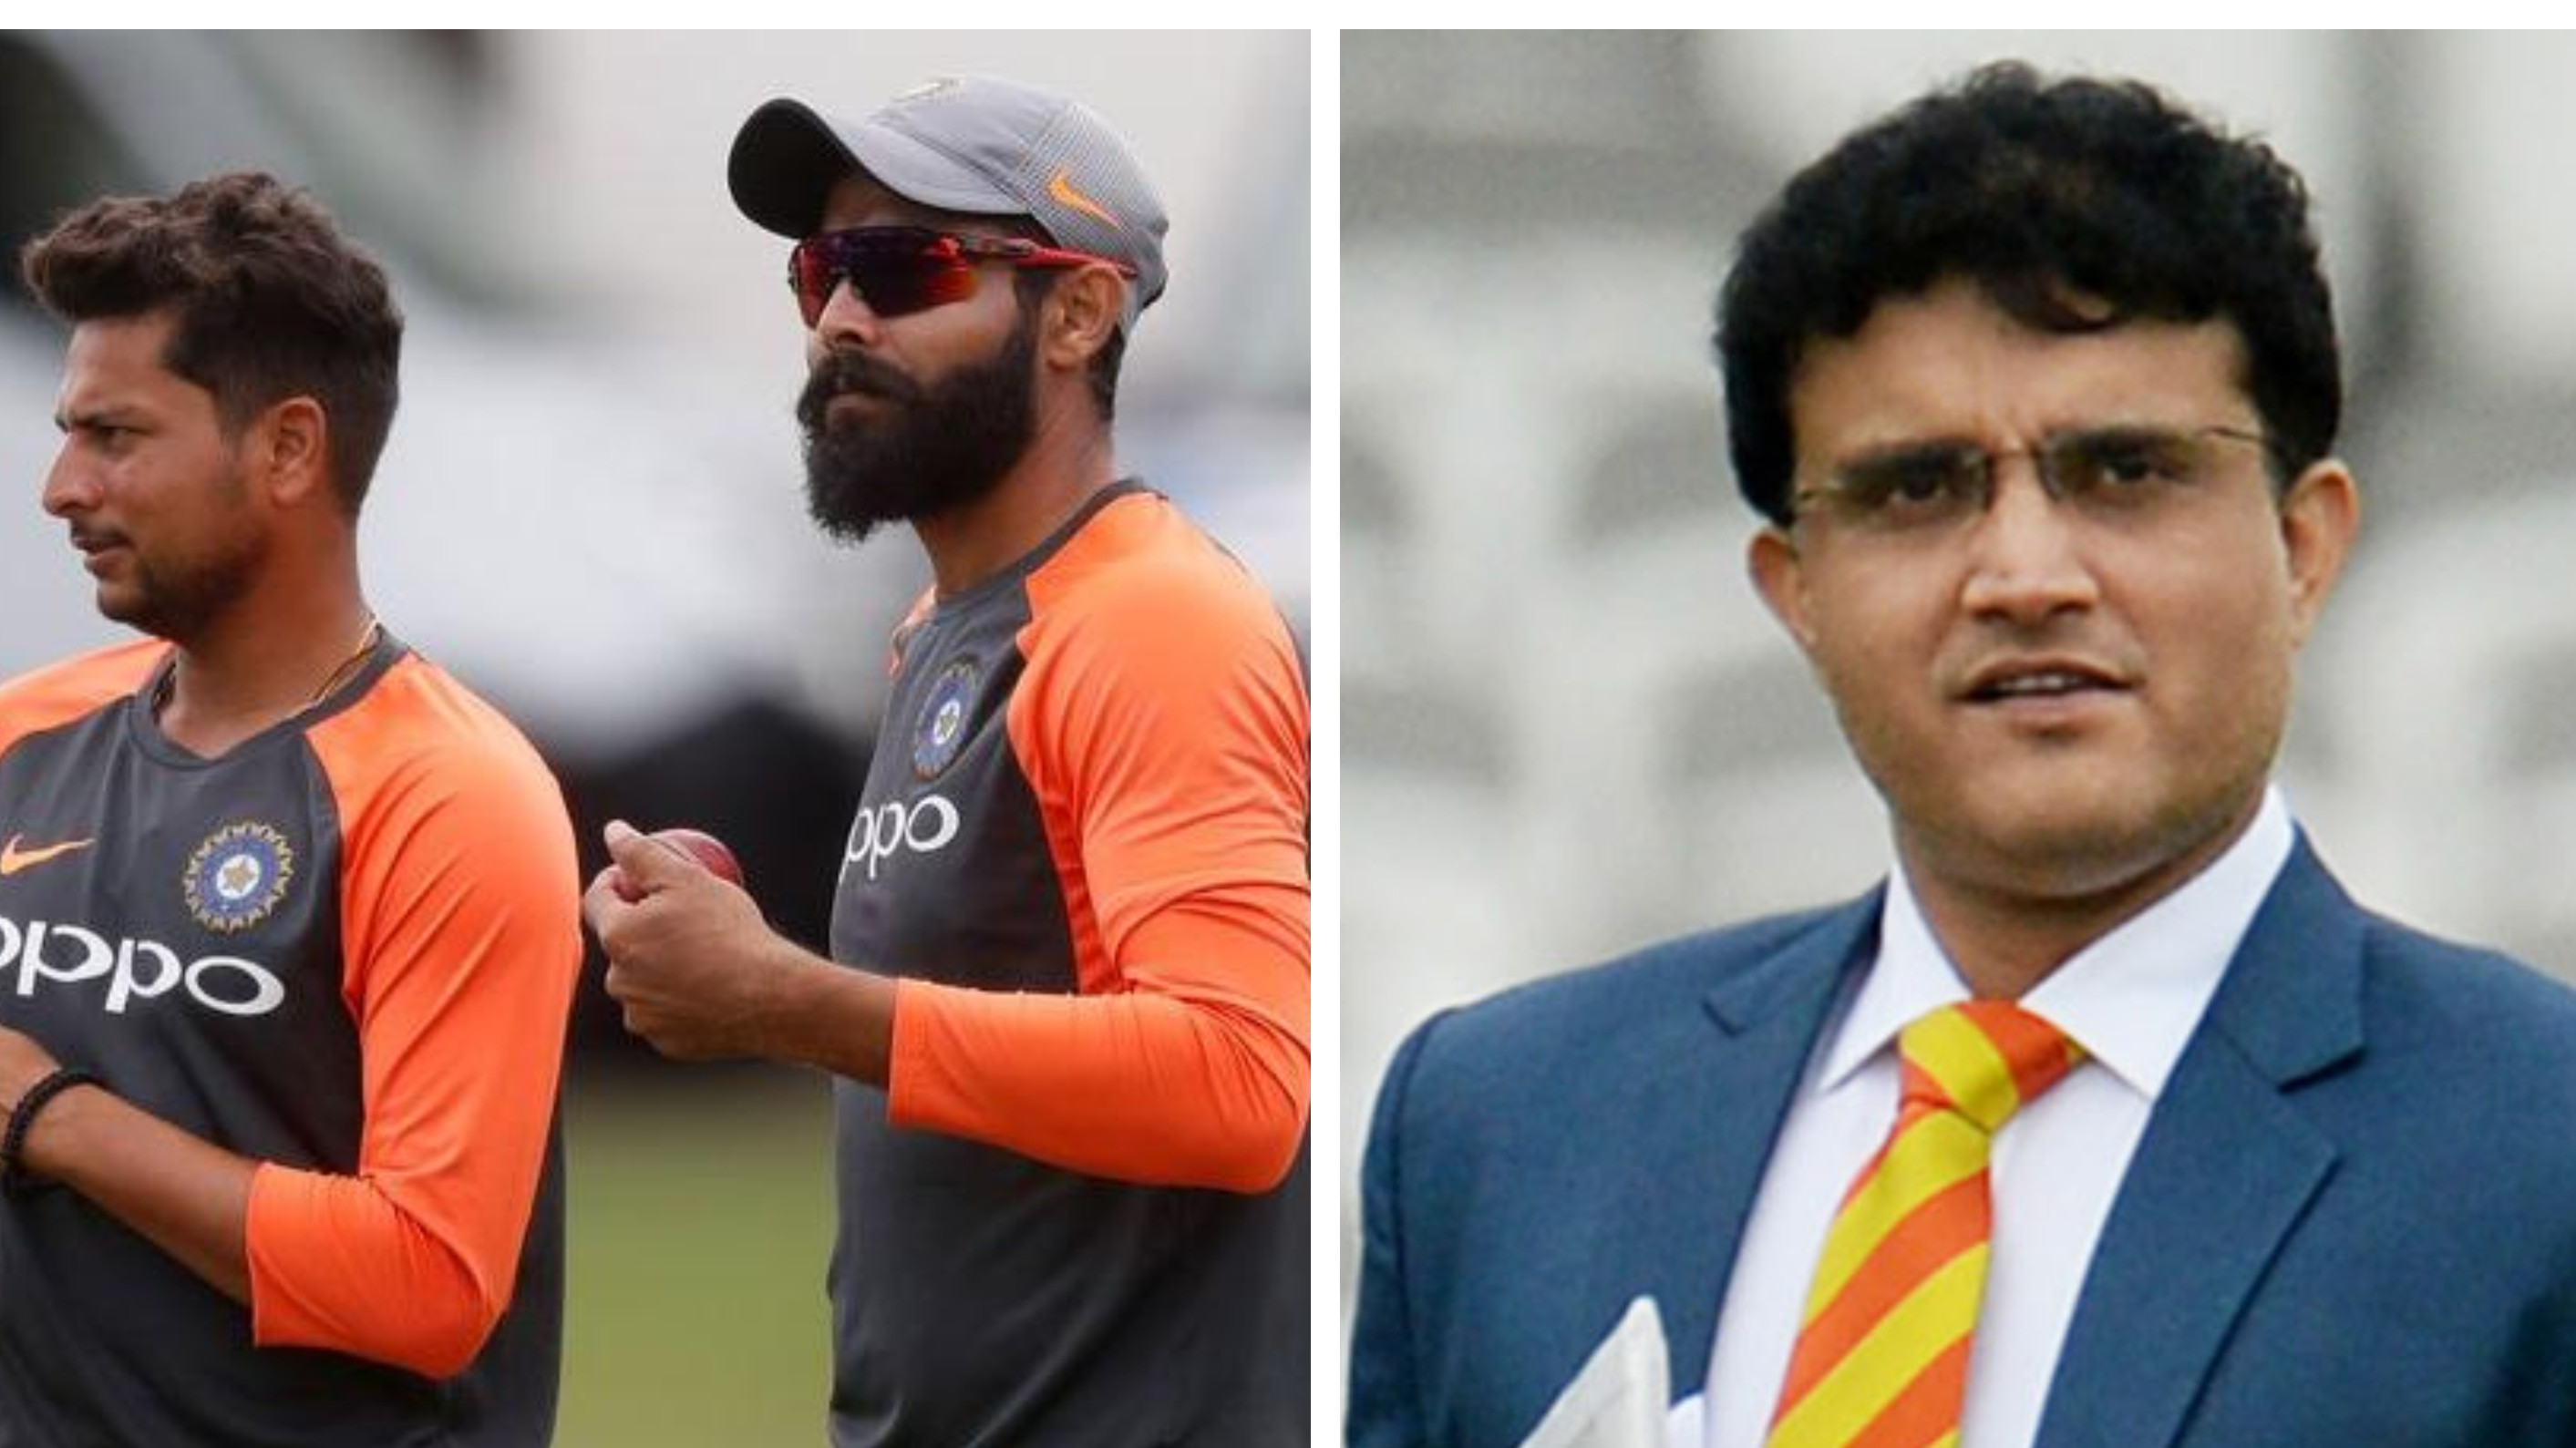 ENG vs IND 2018: Sourav Ganguly reveals his choice between Kuldeep and Jadeja as second spinner for Lord's Test